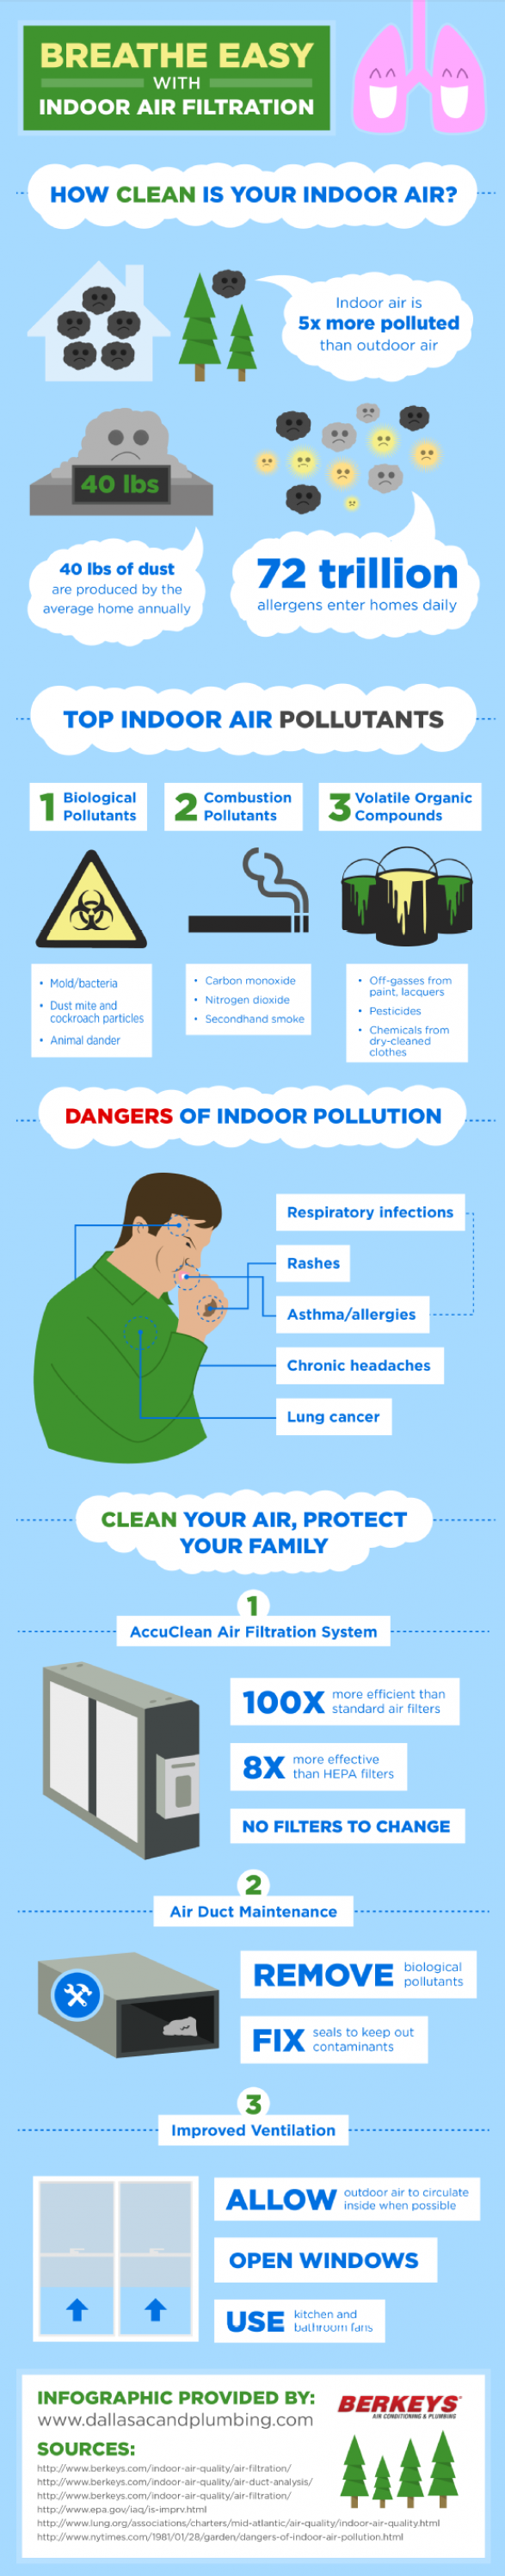 Breathe Easy with Indoor Air Filtration